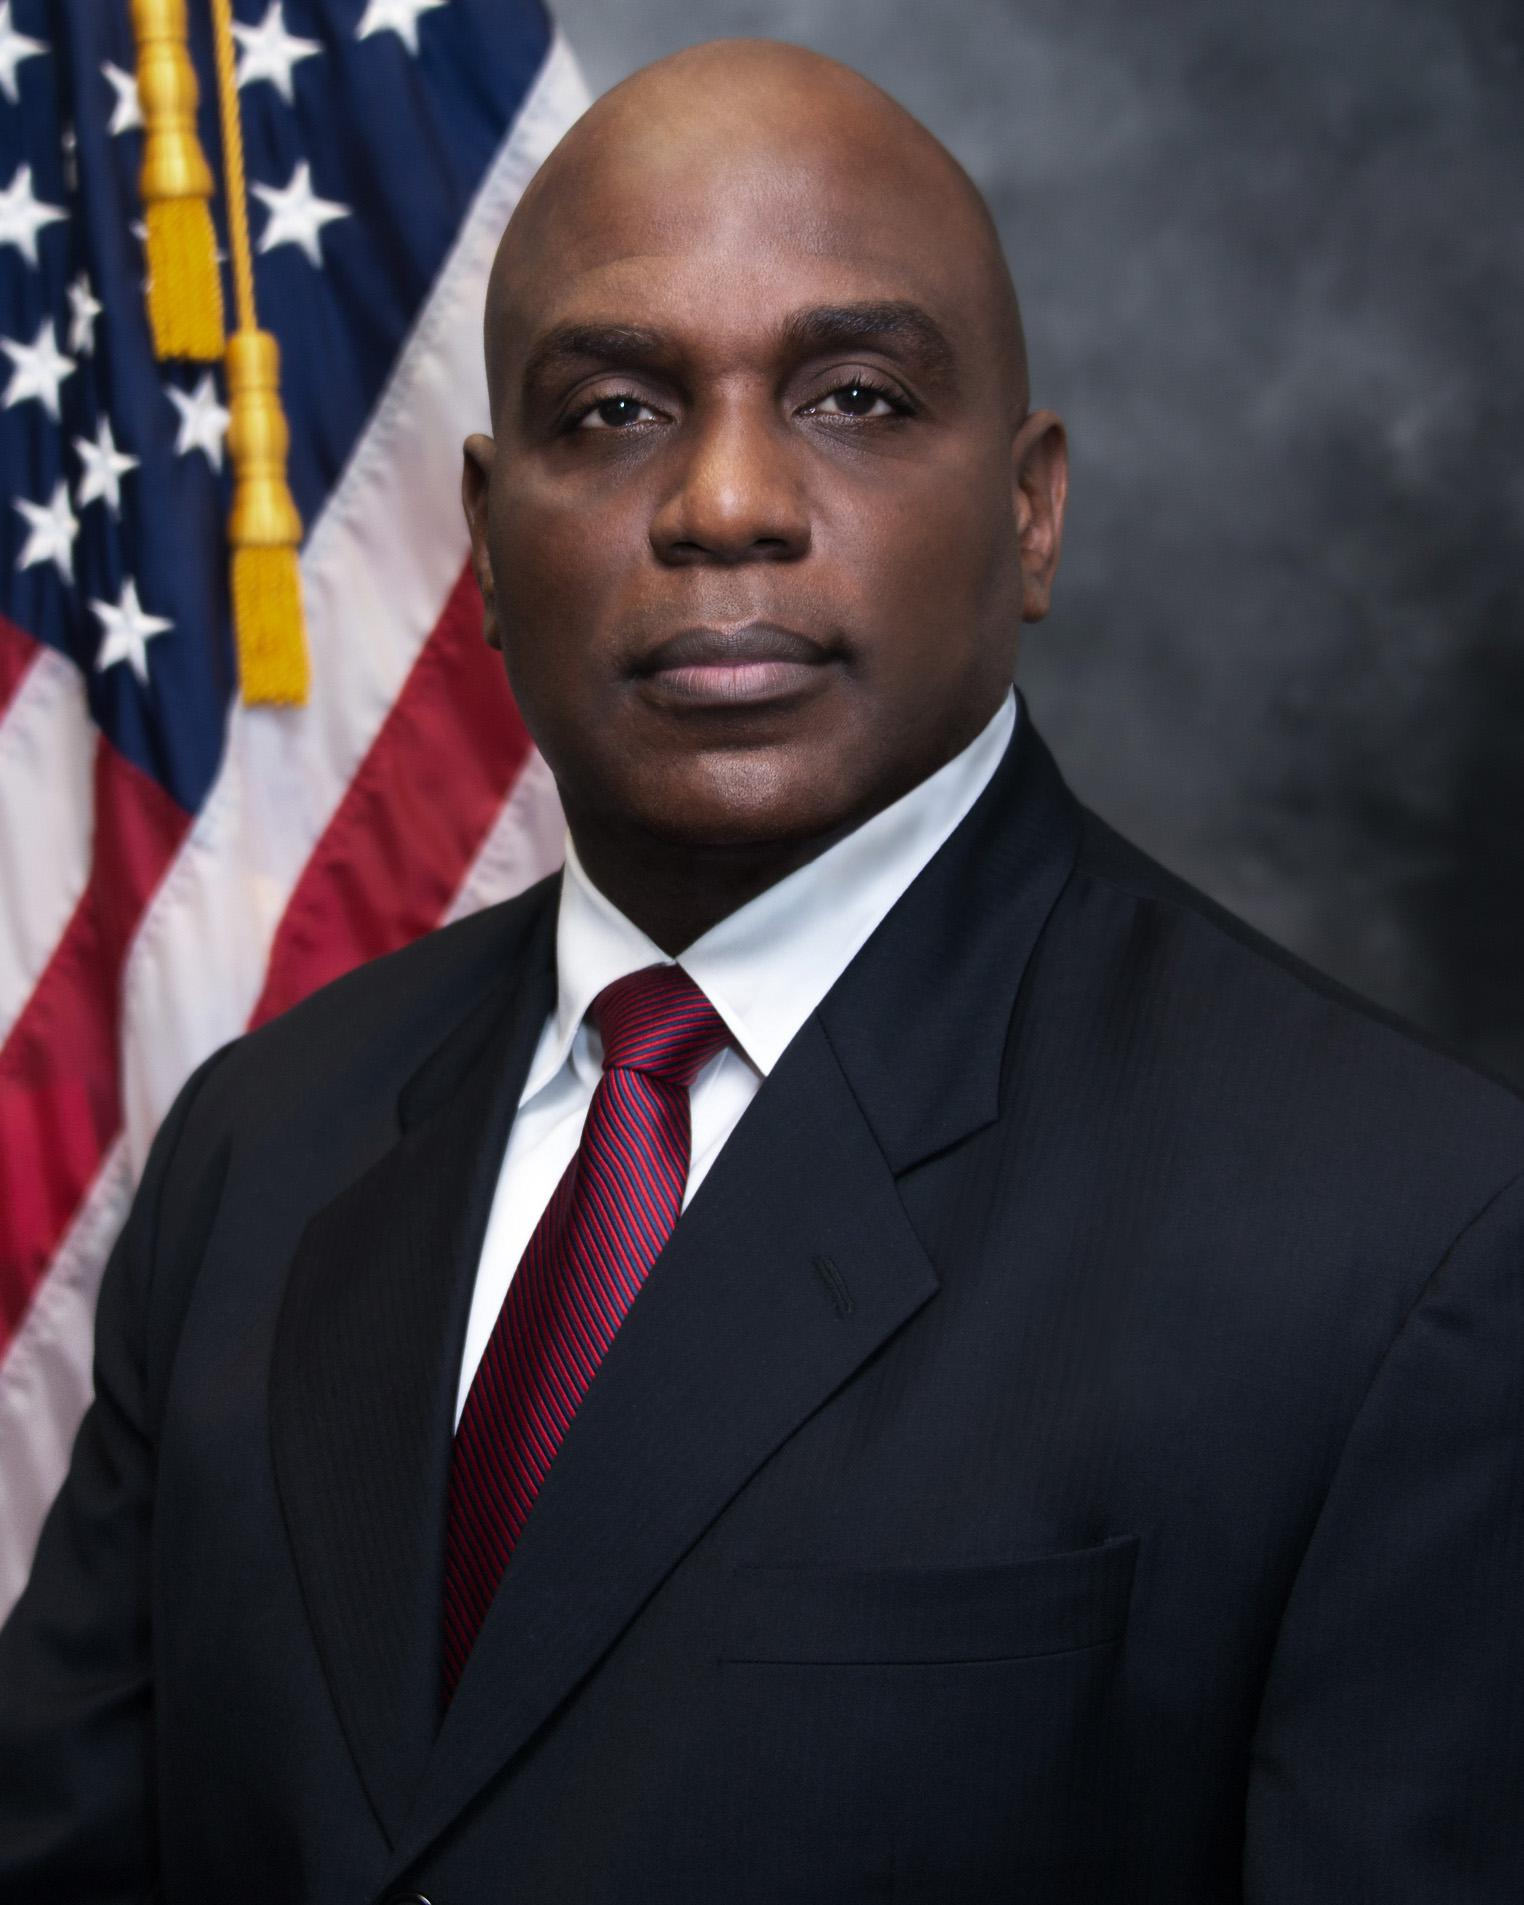 Assistant Special Agent in Charge Dave E. Joseph